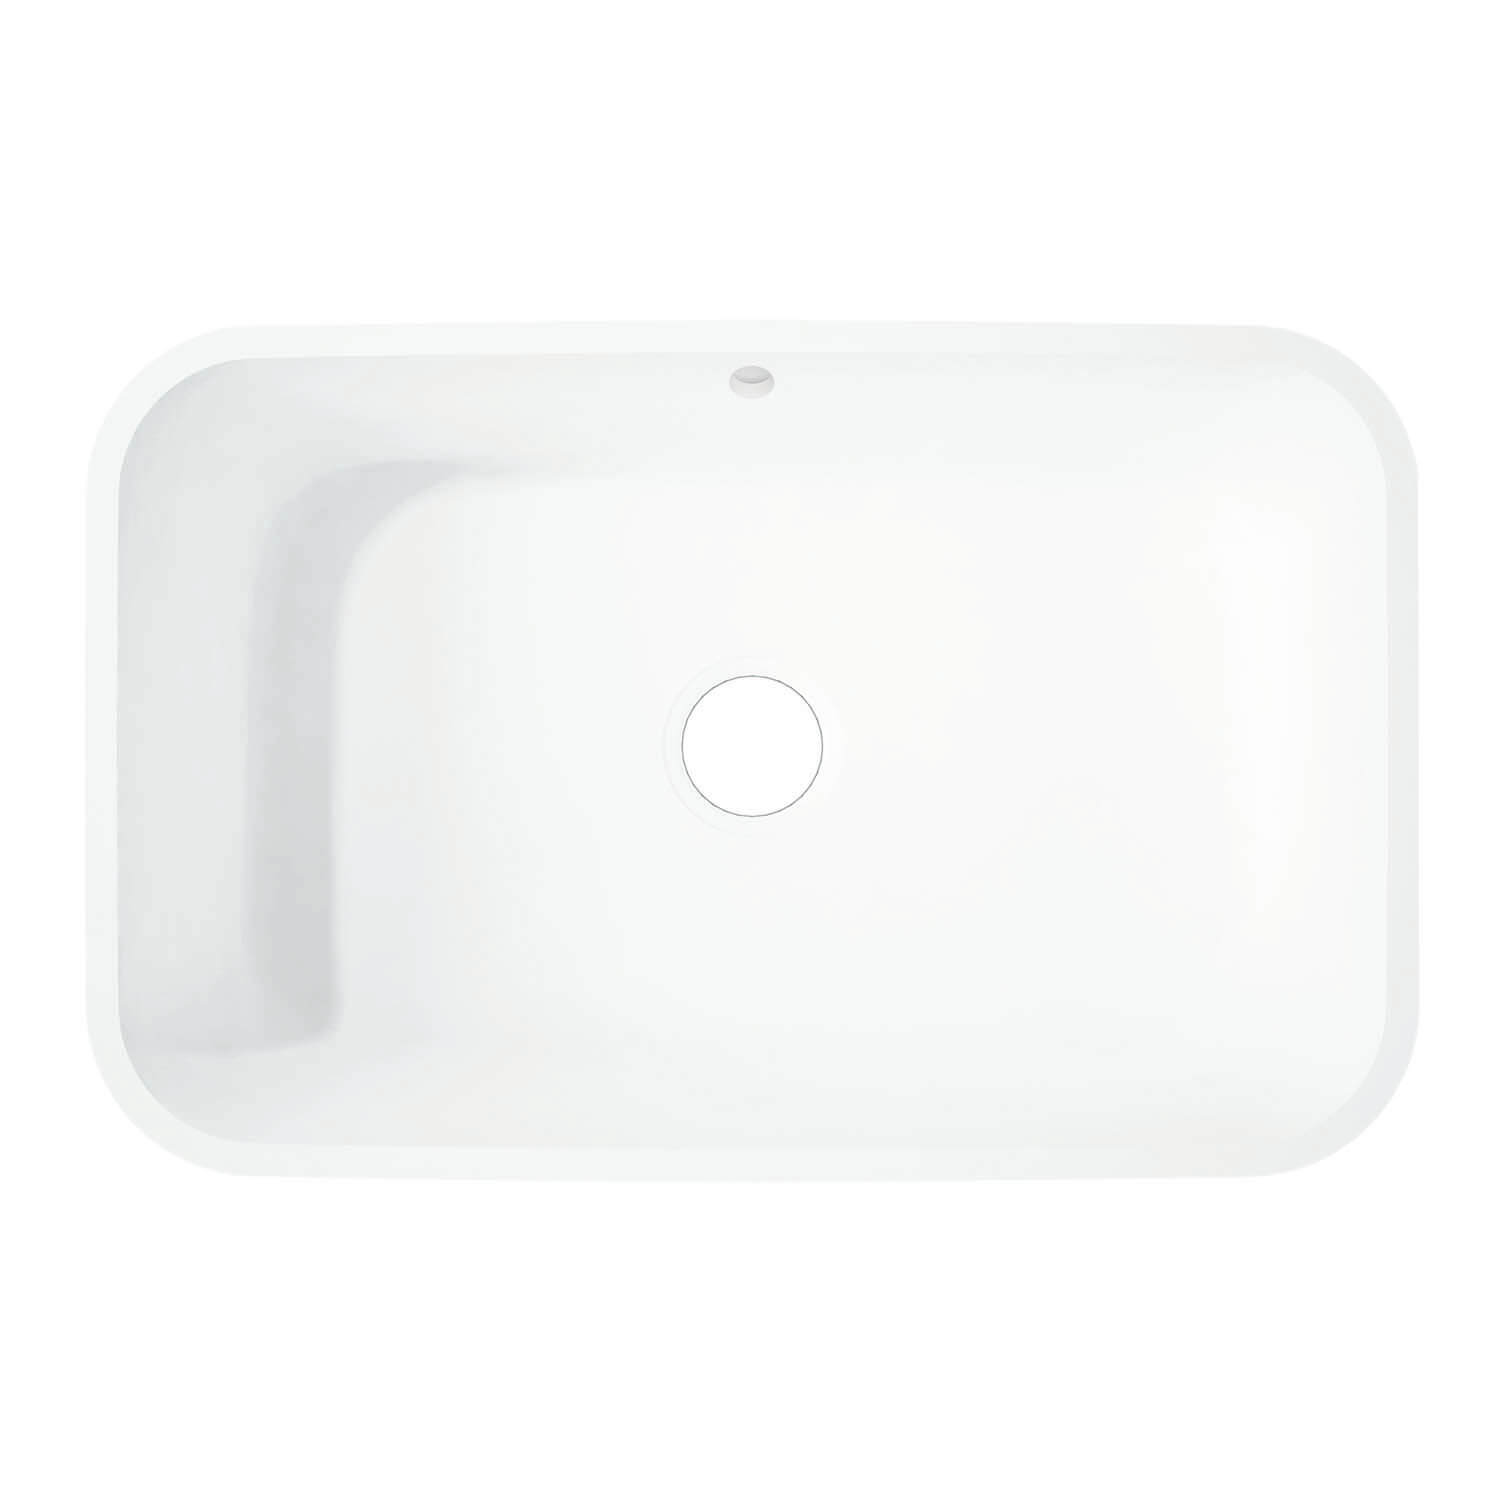 Sweet 881 Integrated Sink